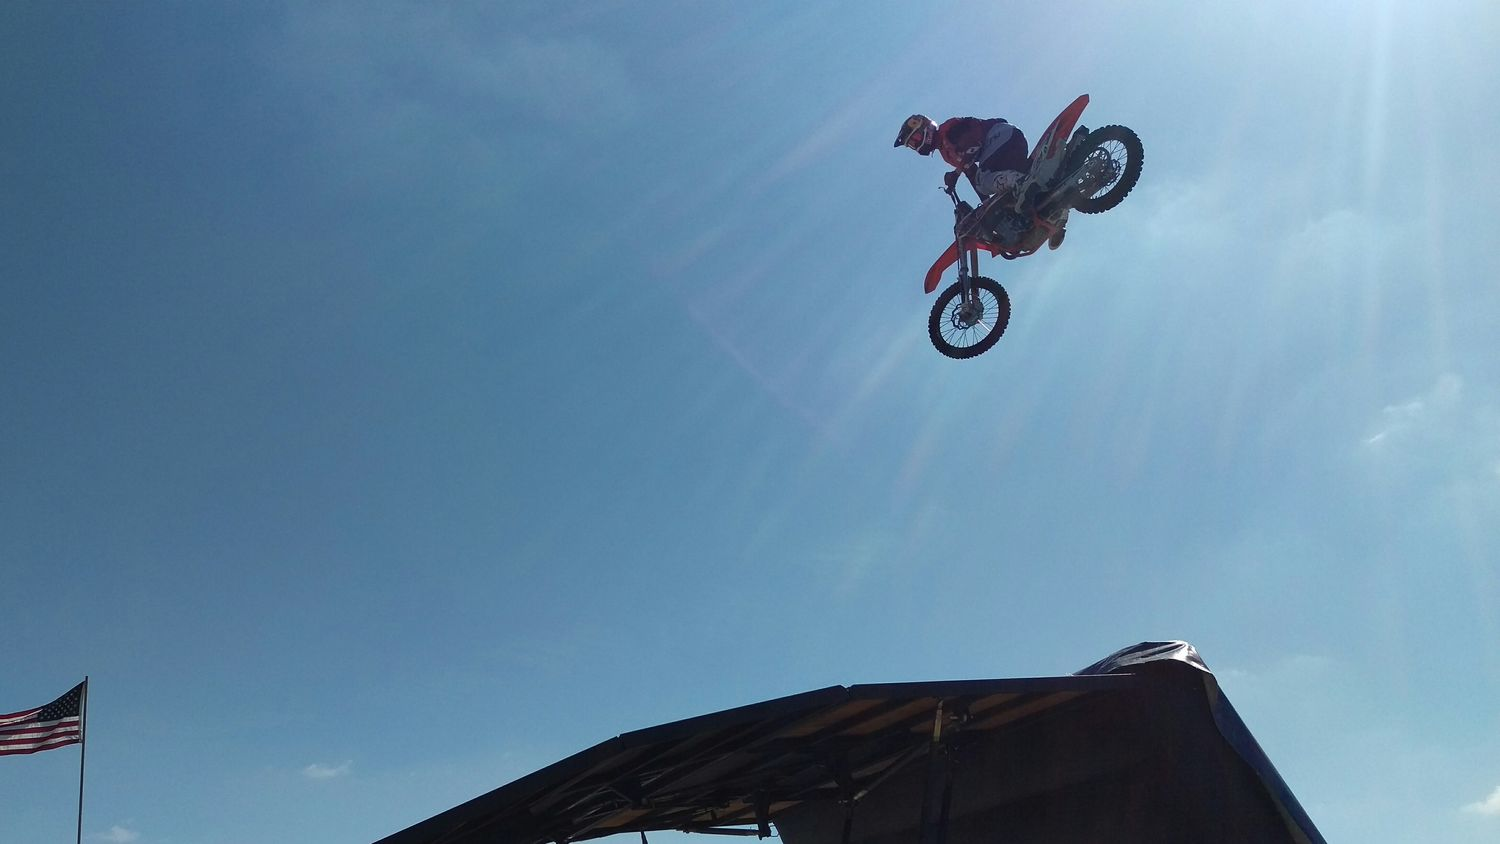 If you can't fly, reach for the sky! Motorcross  Miramar Air Show Motorcycle Dangerous Awesome Jump Fast